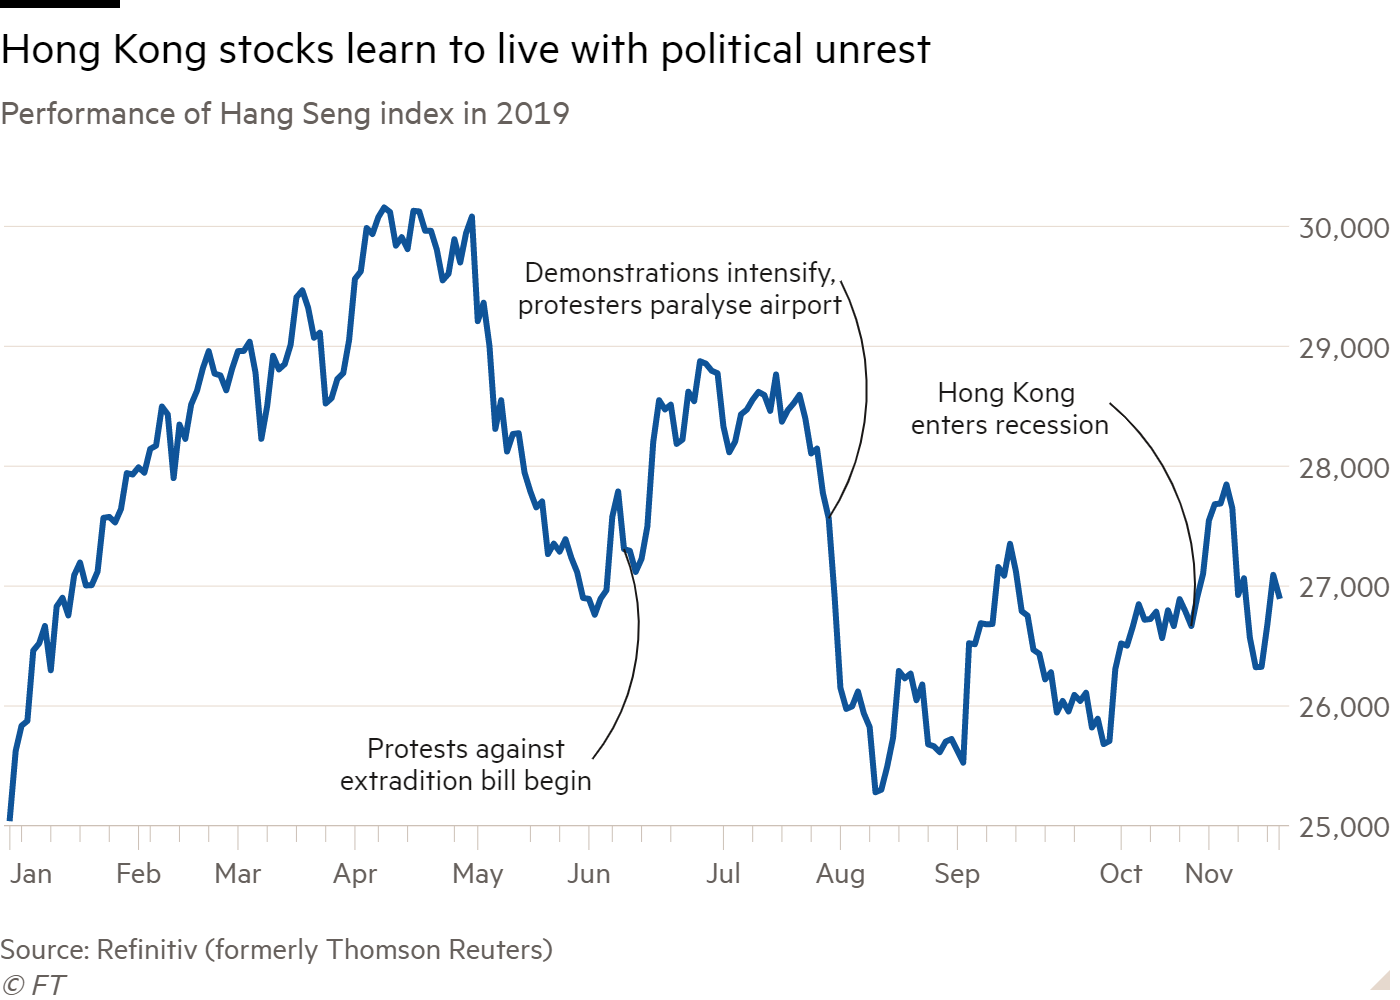 Line chart of Performance of Hang Seng index in 2019 showing Hong Kong stocks learn to live with political unrest